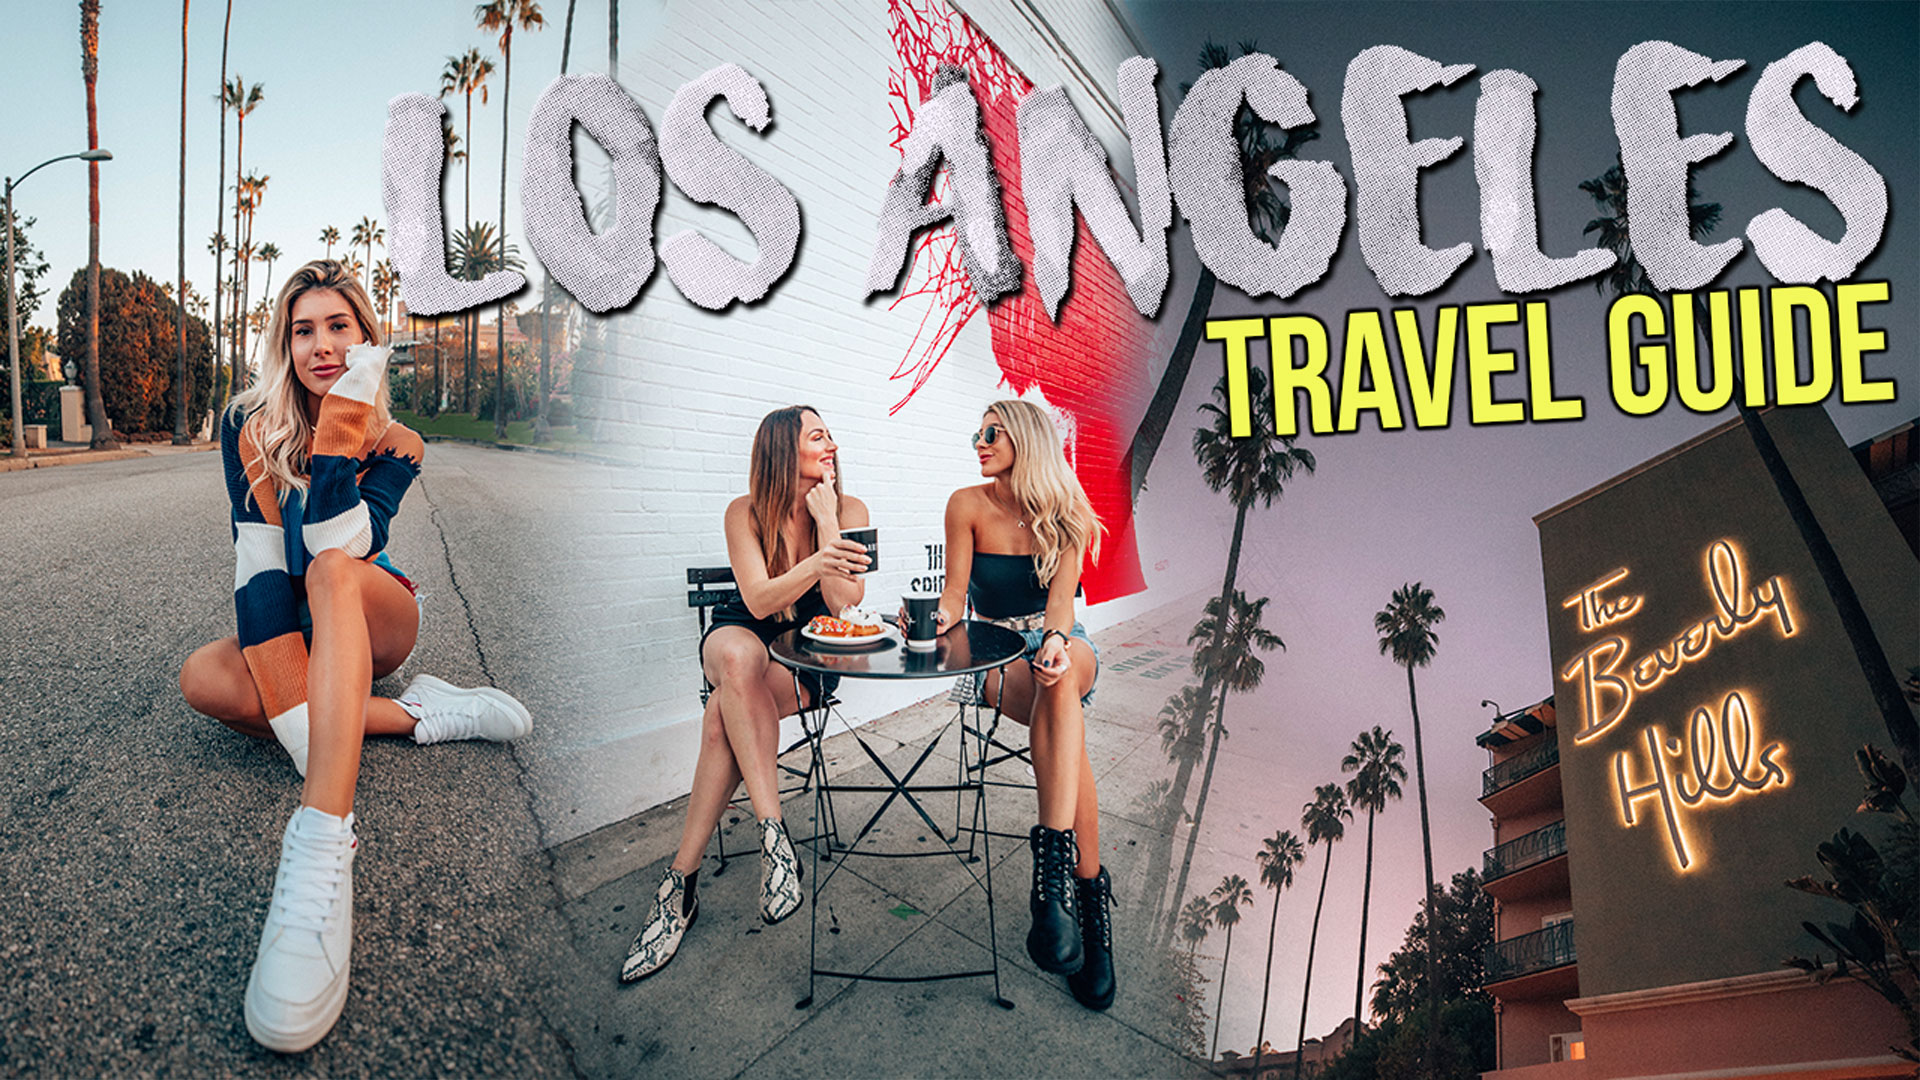 Los Angeles Travel Guide. Go to a video page.